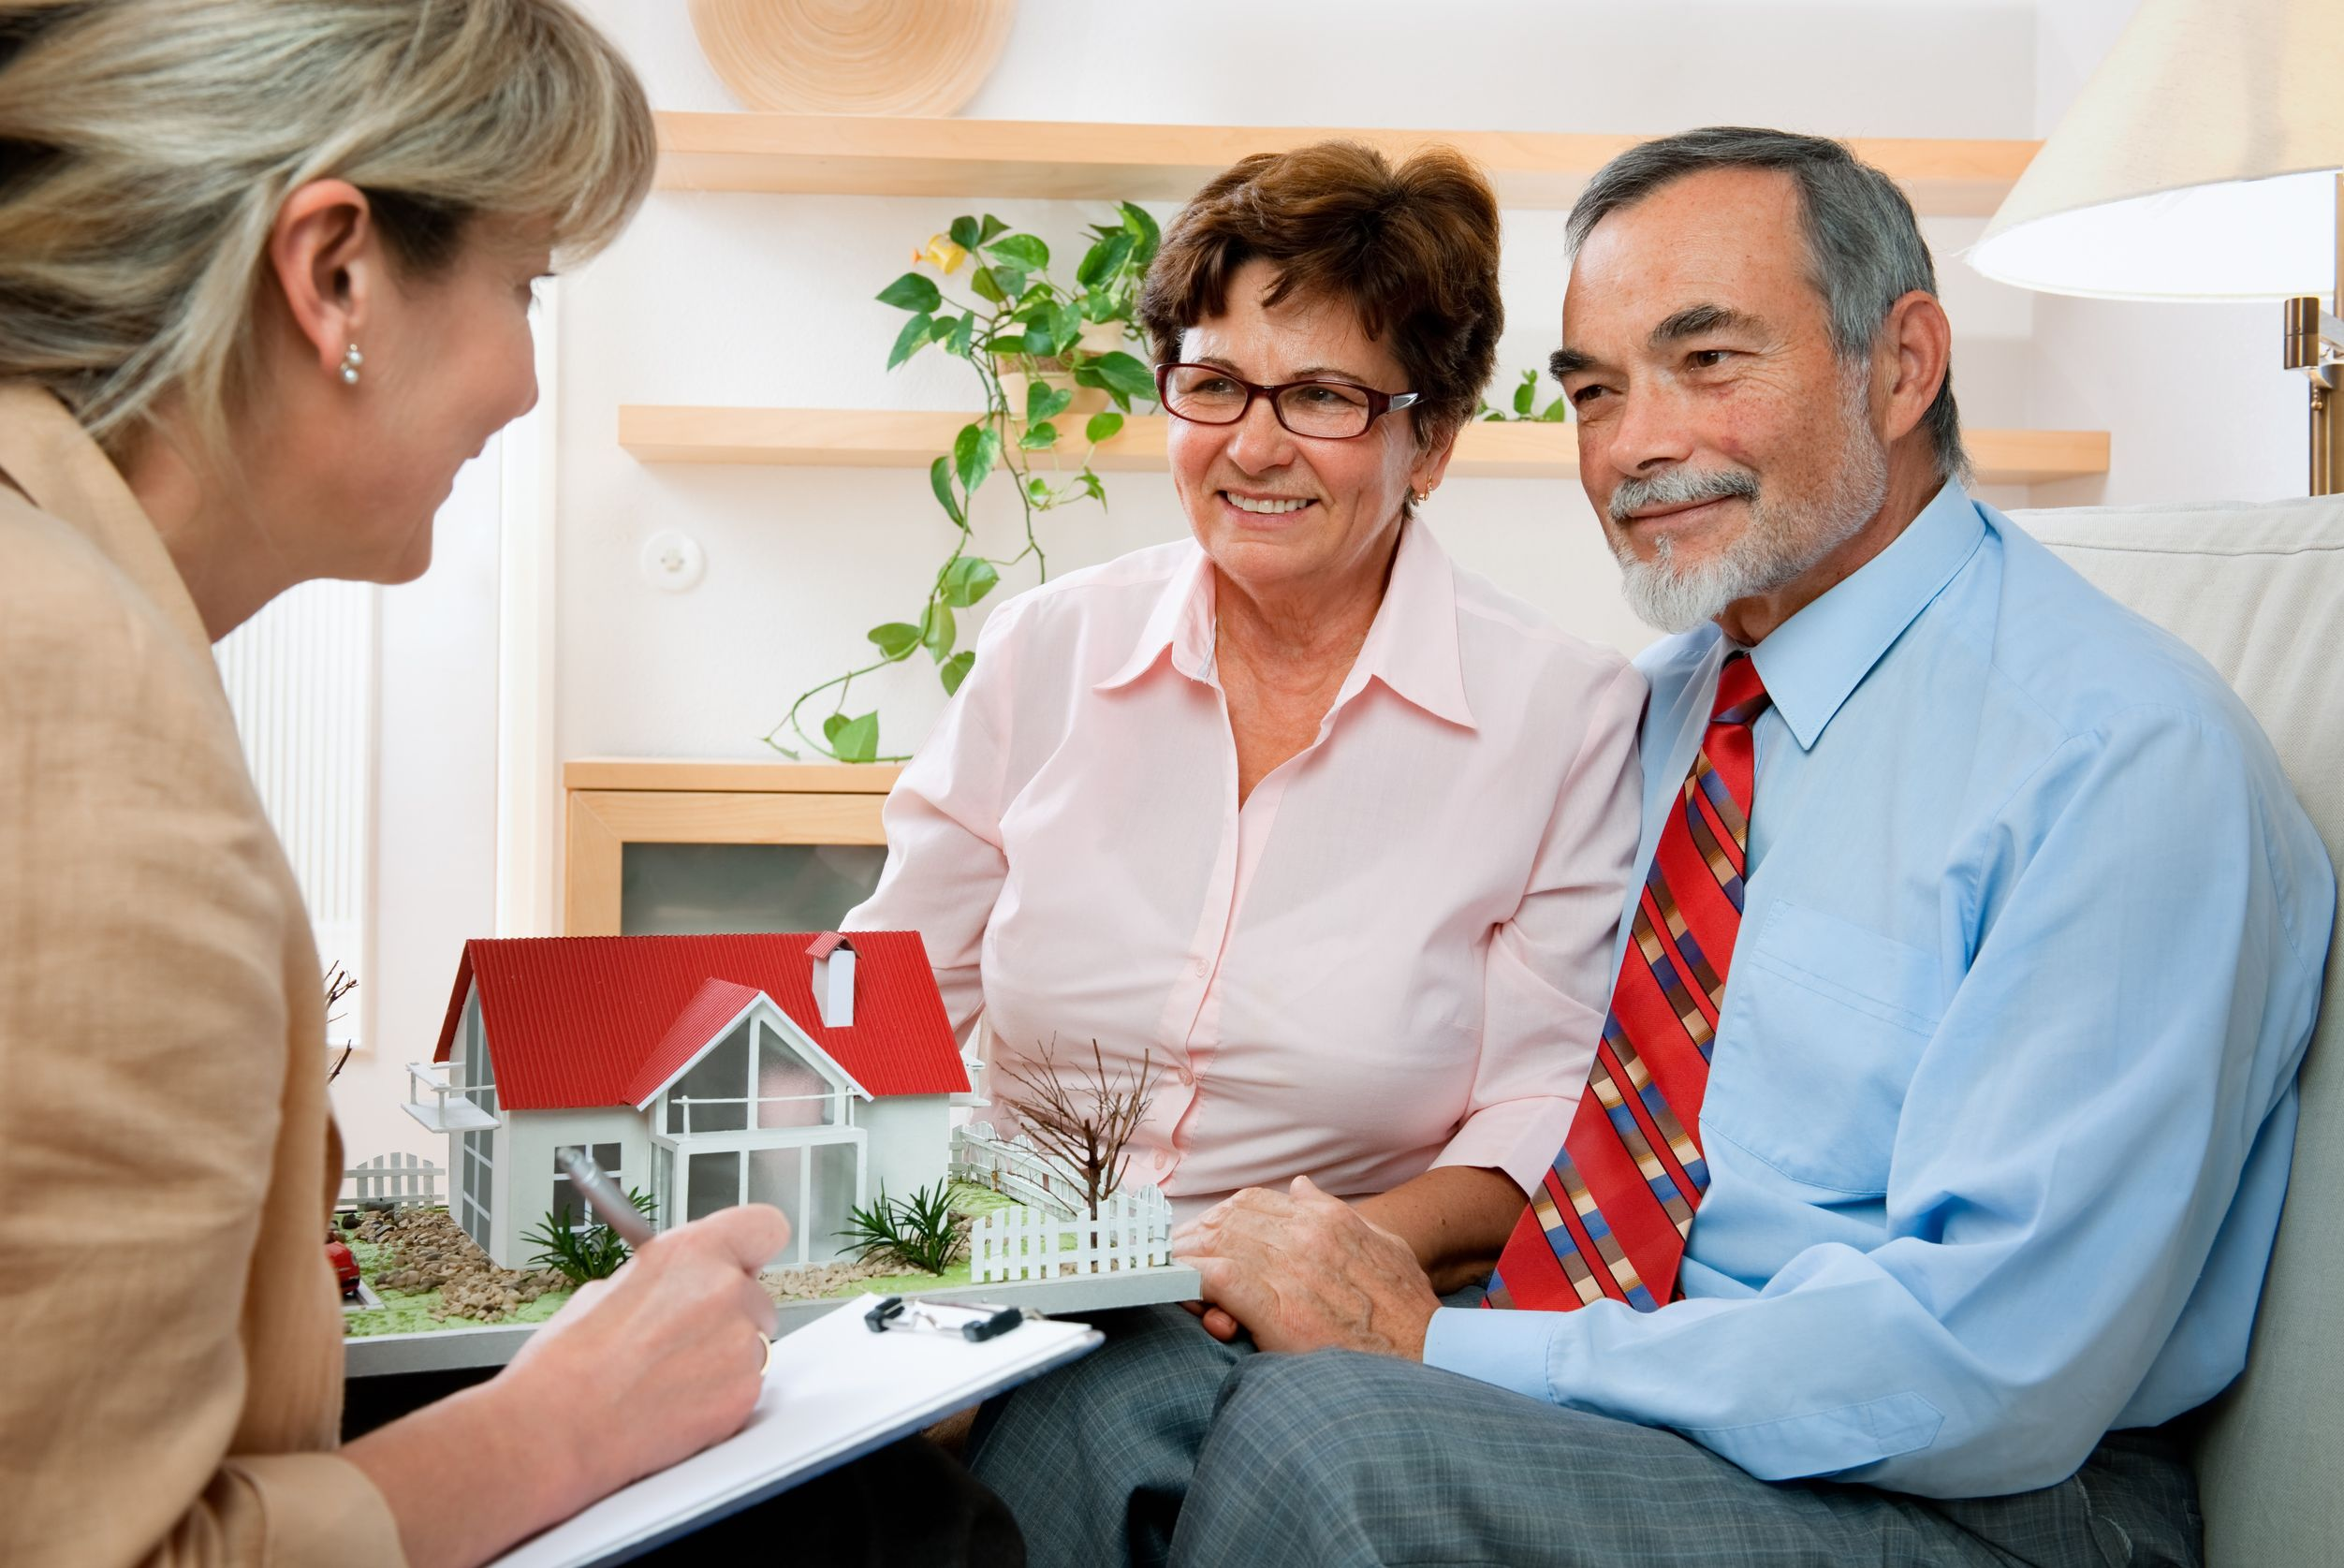 What You Should Know About Home Equity Loans in Reisterstown MD Keywords: Home Equity Loans Reisterstown MD